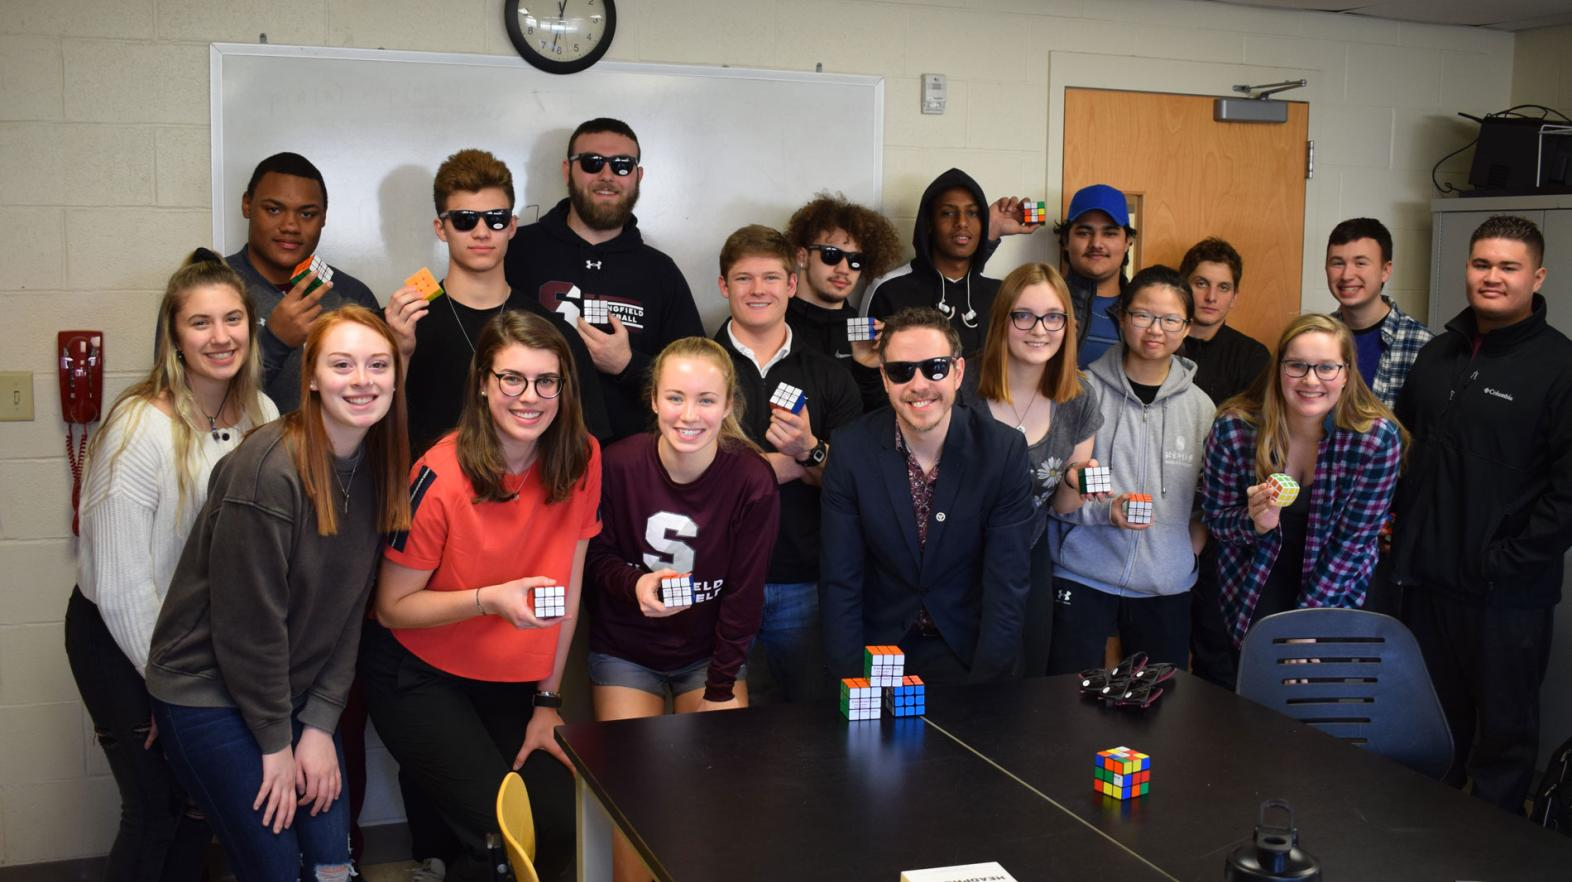 A group of students from the Springfield College Department of Mathematics, Physics, and Computer Science stand together at a Rubik's Cube competition